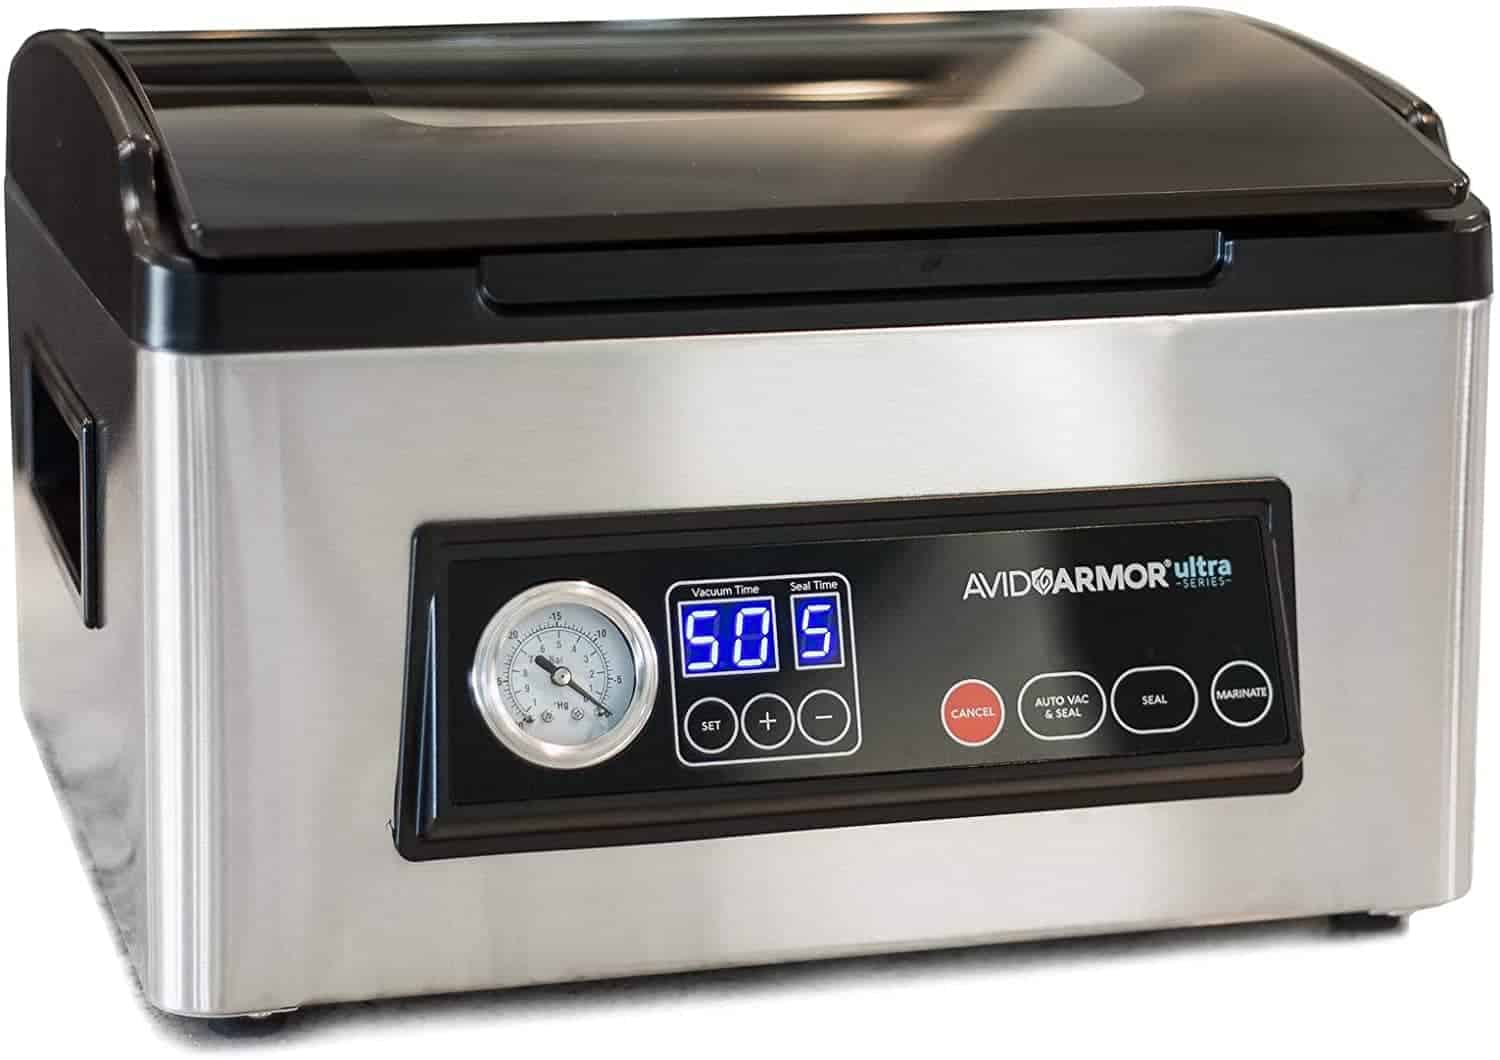 Avid Armor Chamber Vacuum Sealer for Food